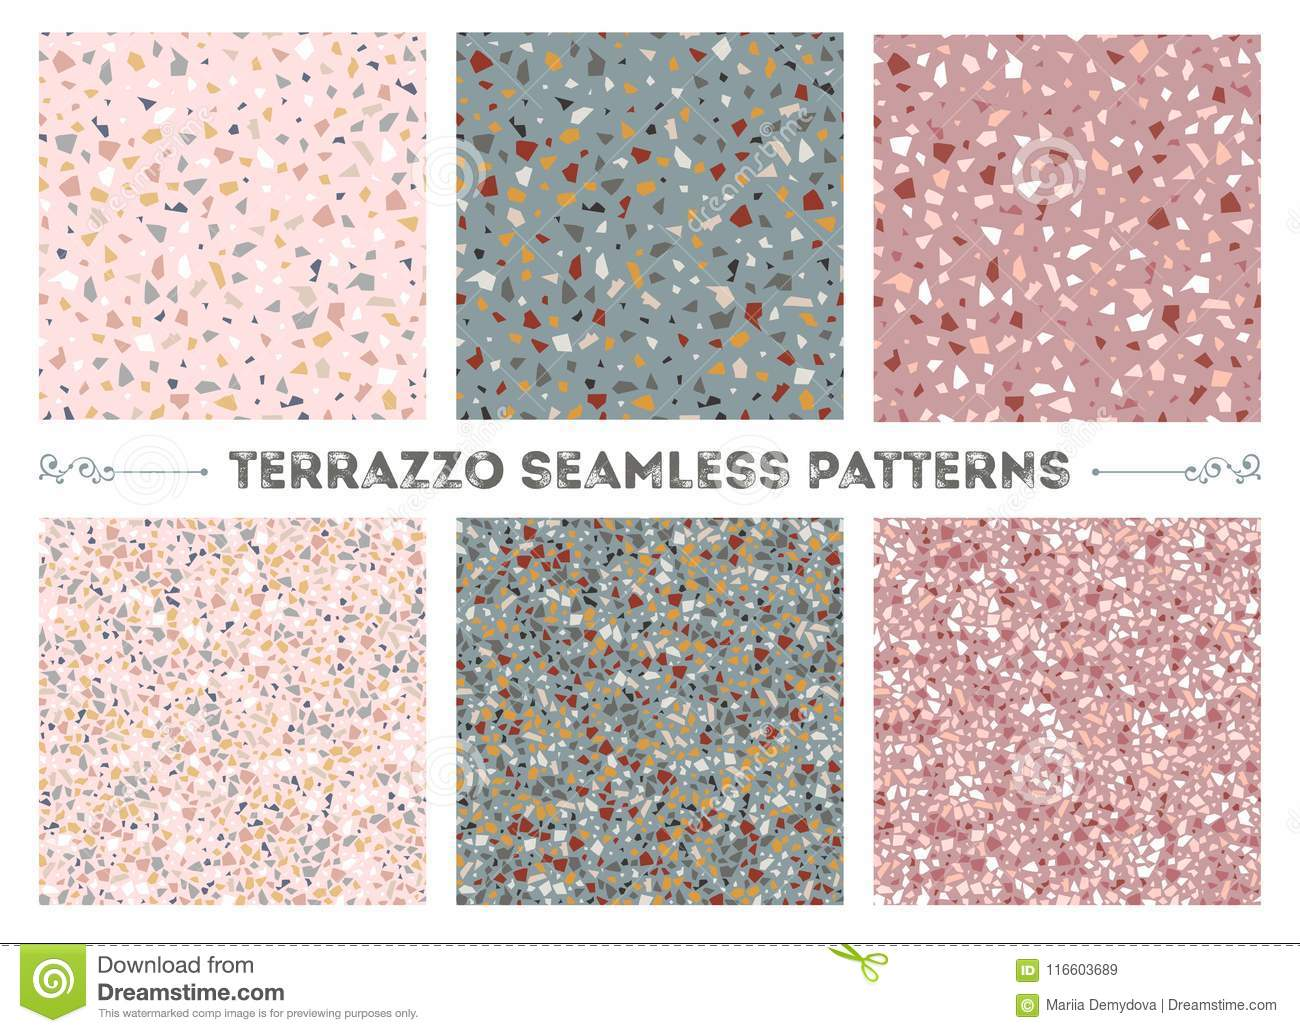 Terrazzo seamless patterns stock vector. Illustration of material ...